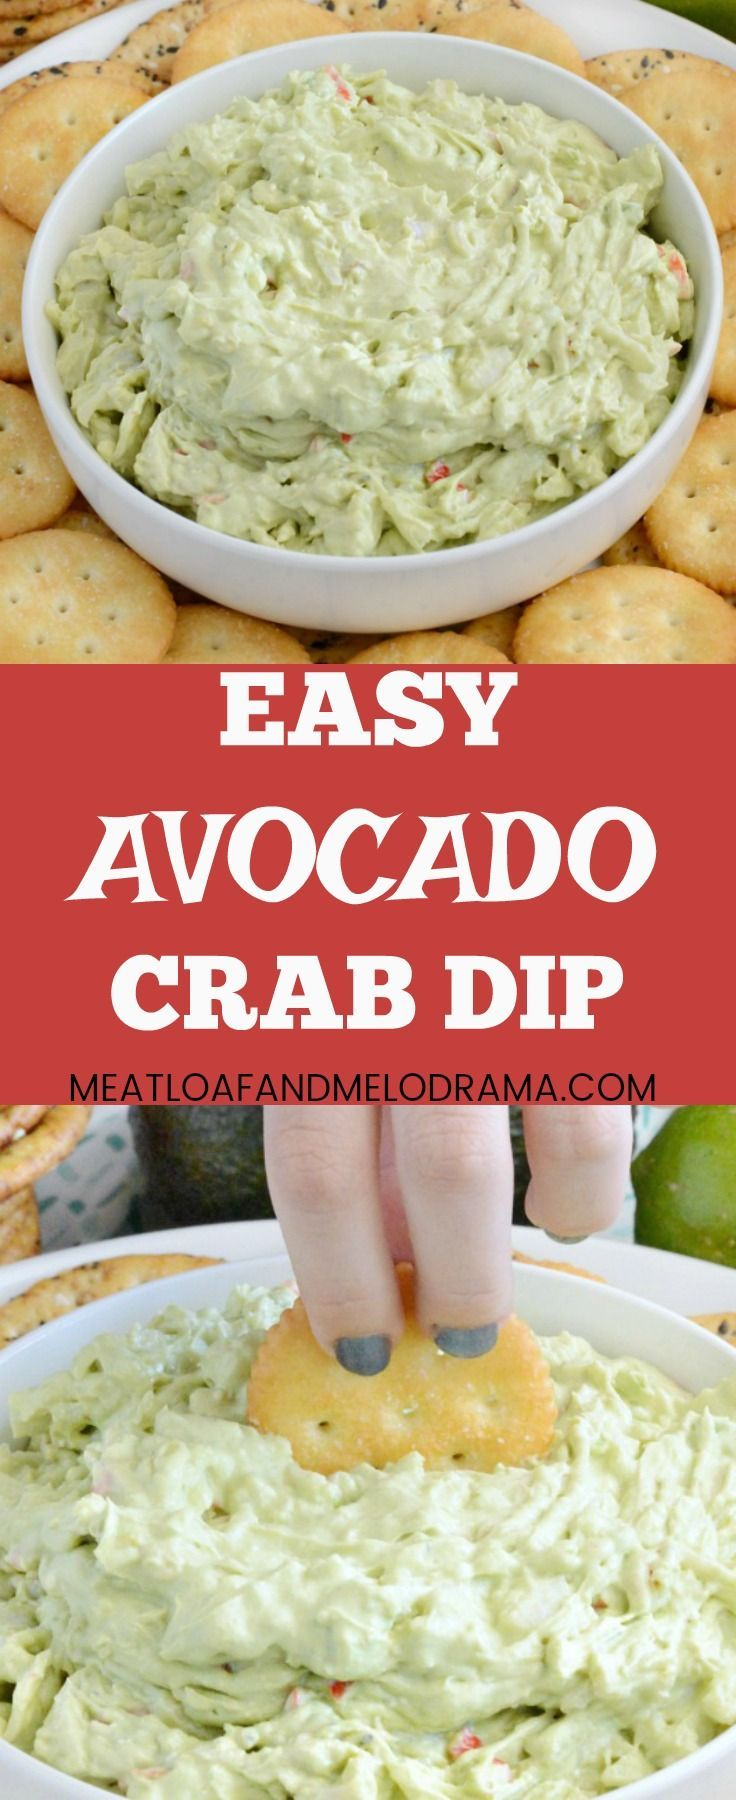 Easy Avocado Crab Dip is cool, creamy and takes only a few minutes to make. Serve it with your favorite crackers for an appetizer that everyone loves!